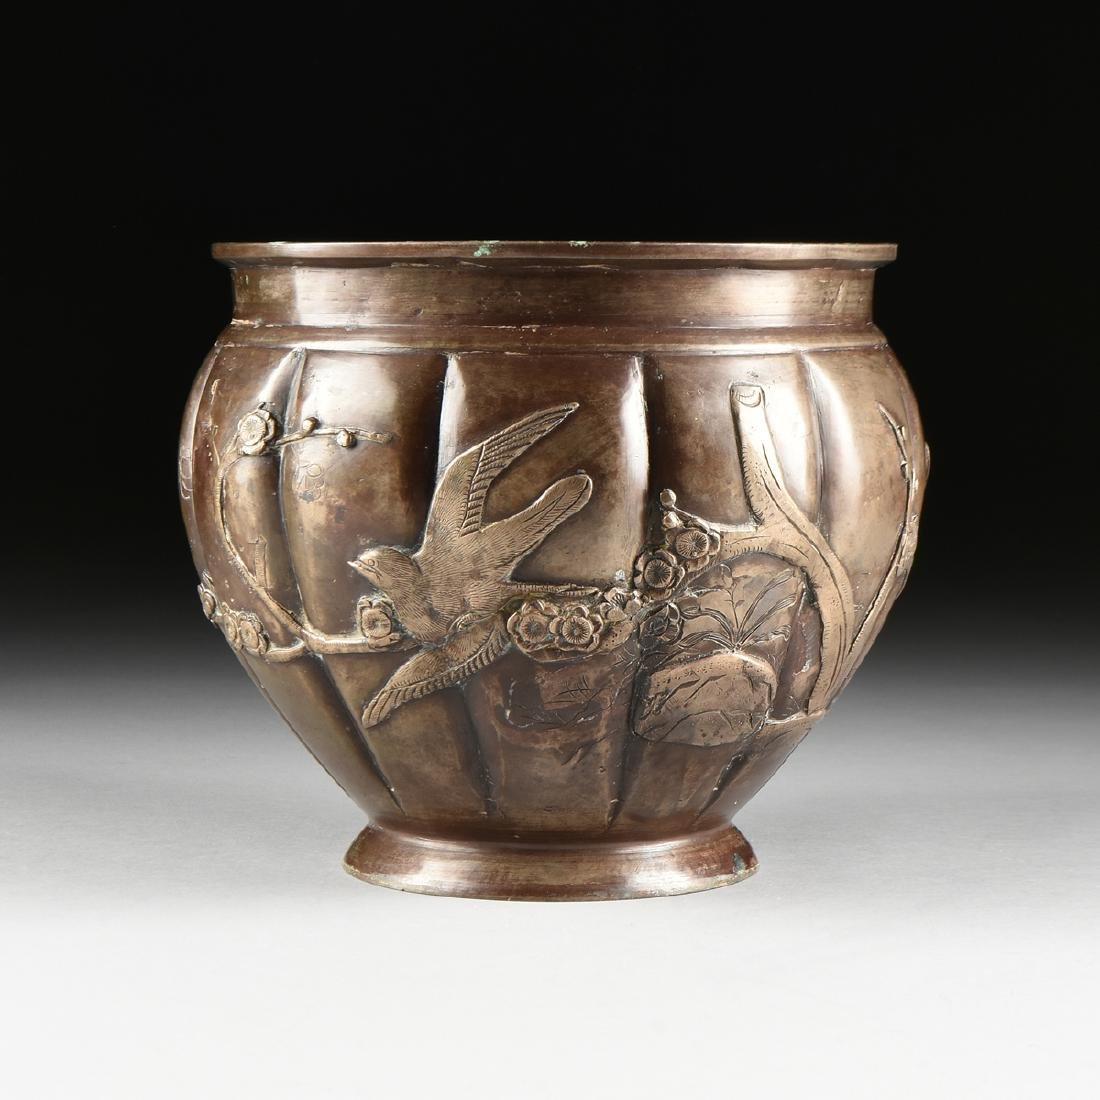 A JAPANESE LATE MEIJI PERIOD BRONZE URN WITH APPLIED